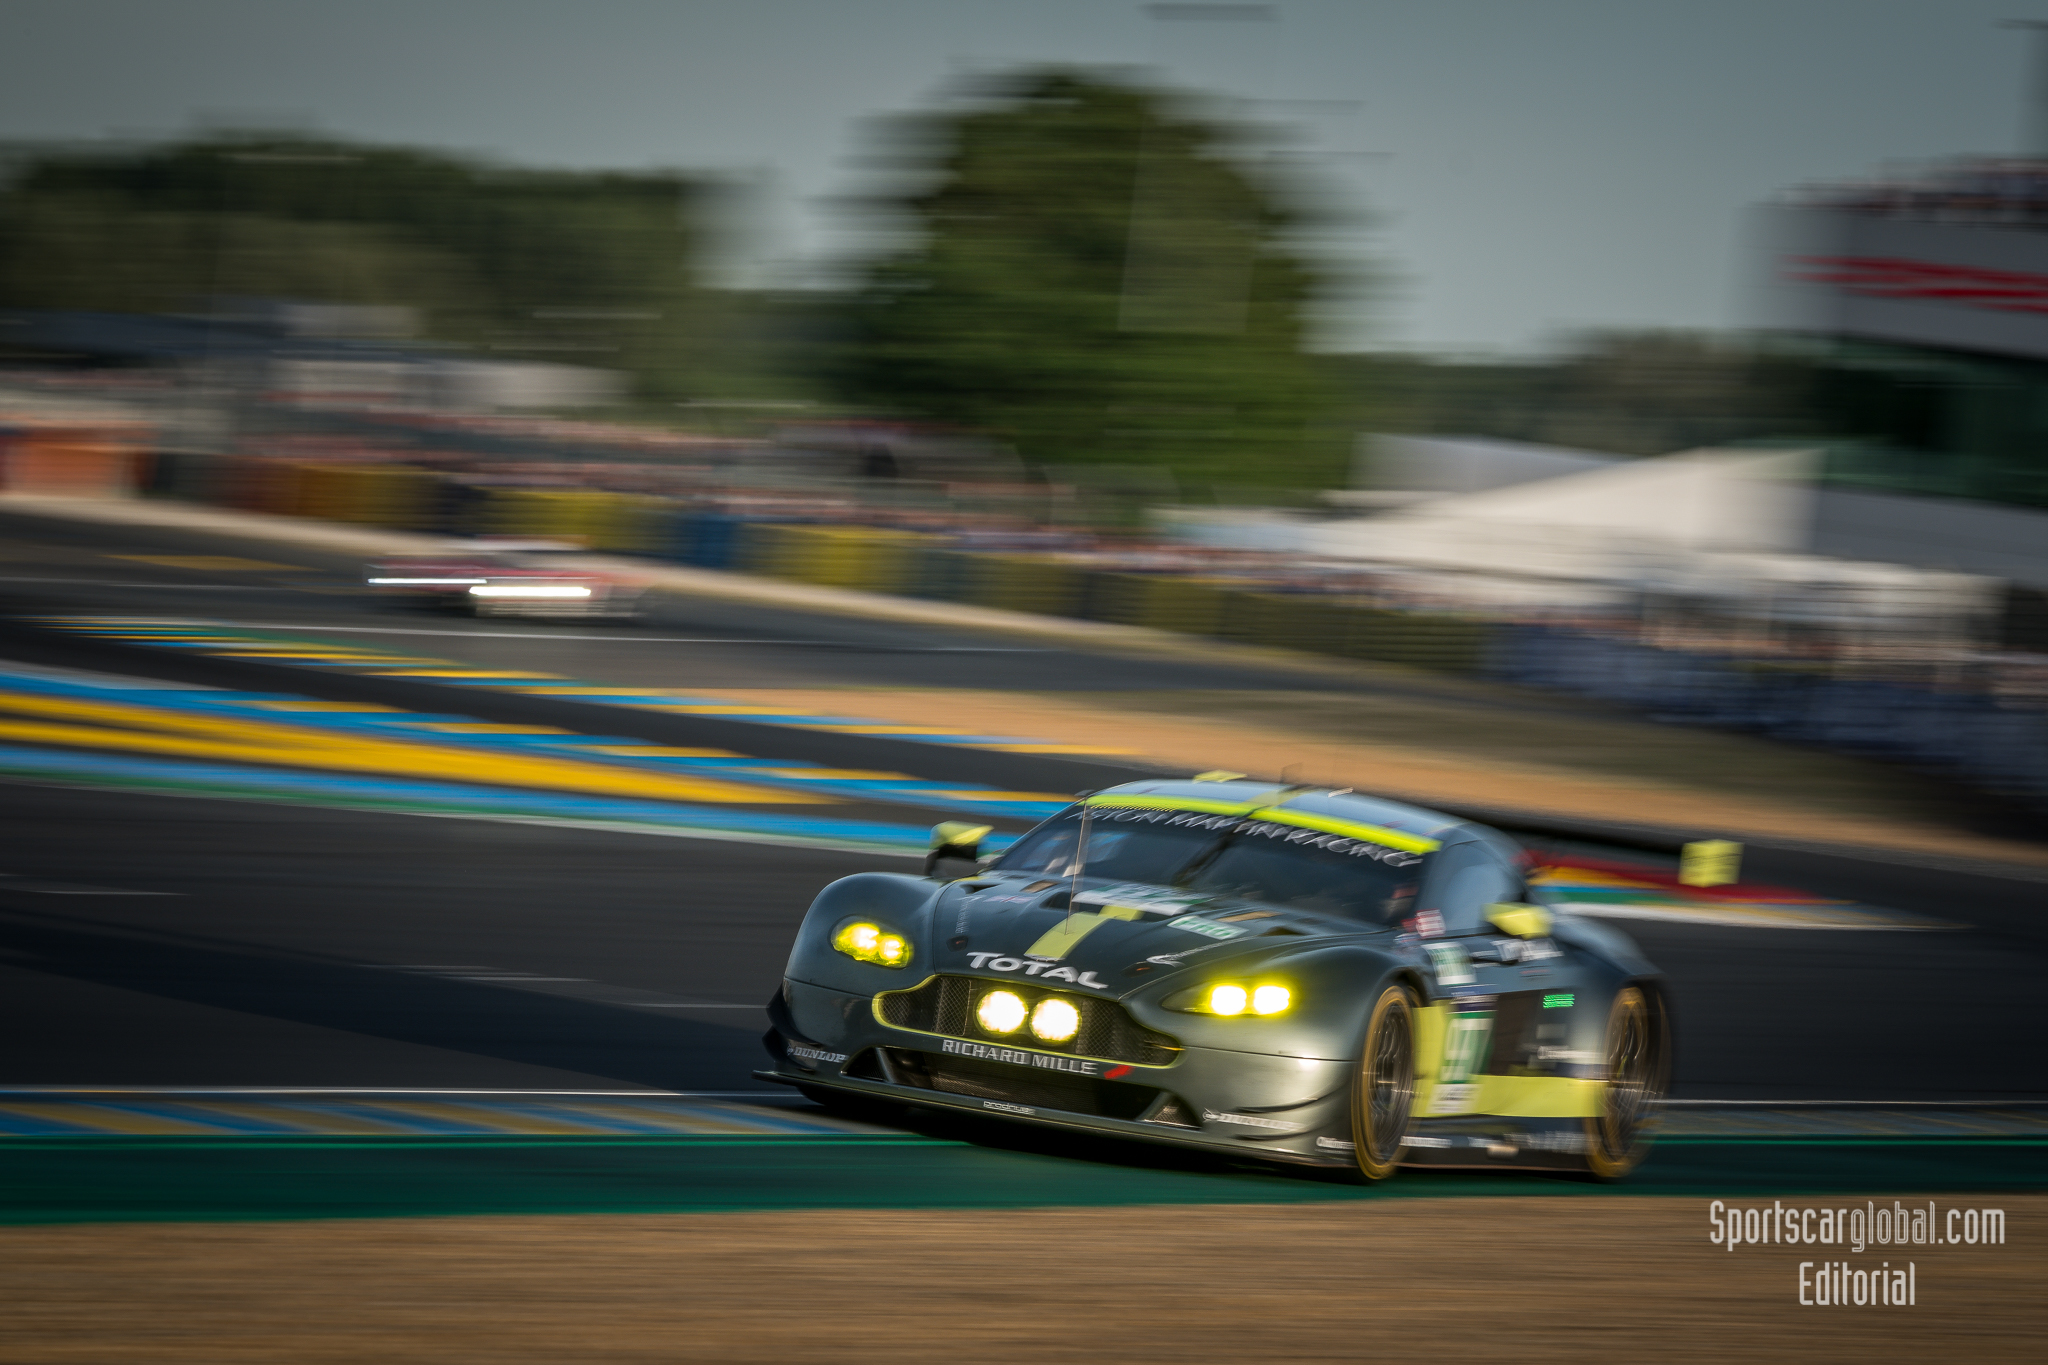 le mans: review – the gte battle | sportscarglobal